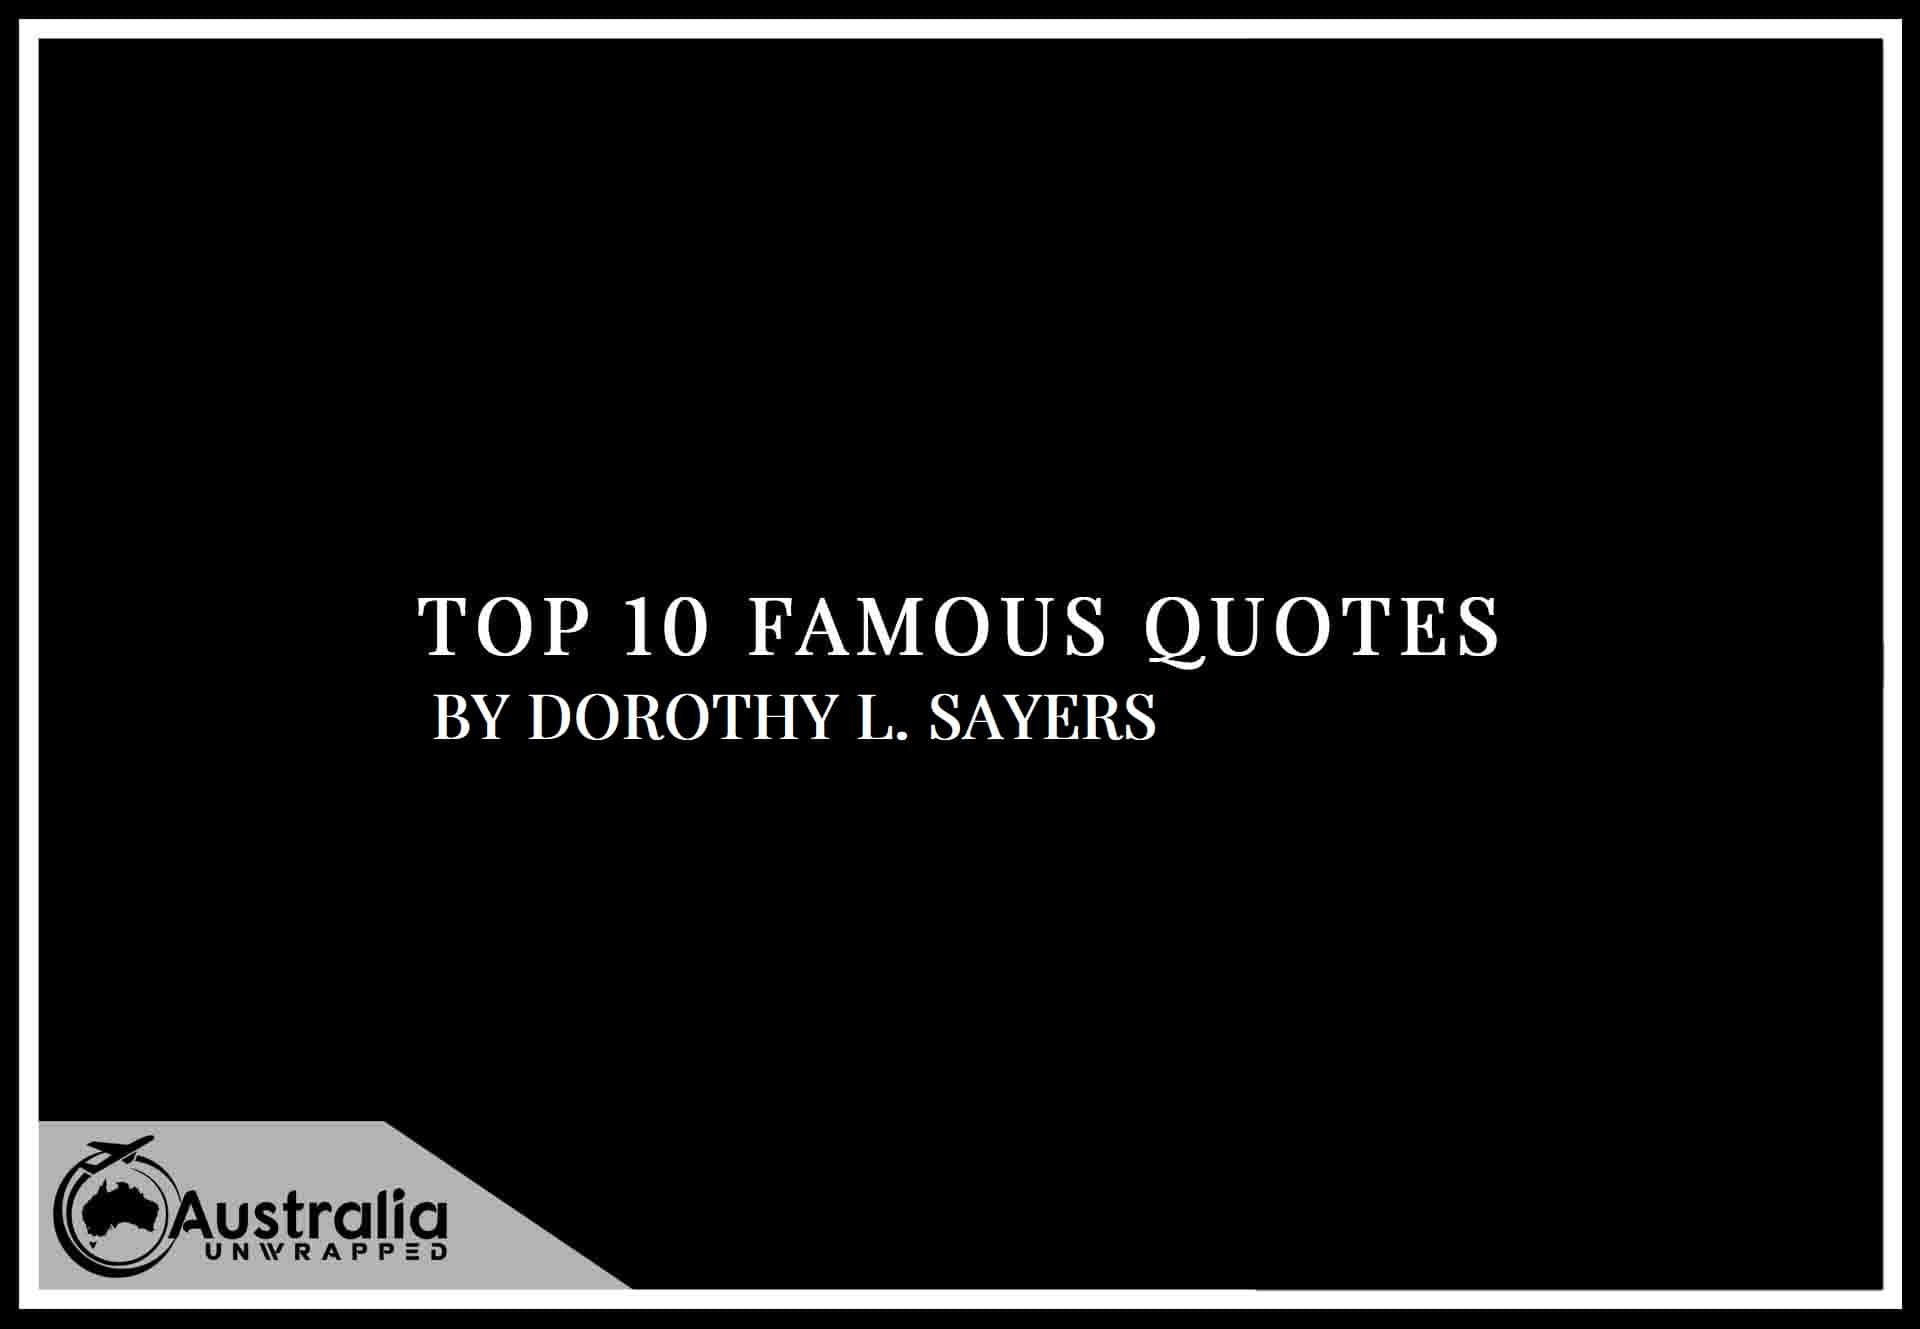 Top 10 Famous Quotes by Author Dorothy L. Sayers